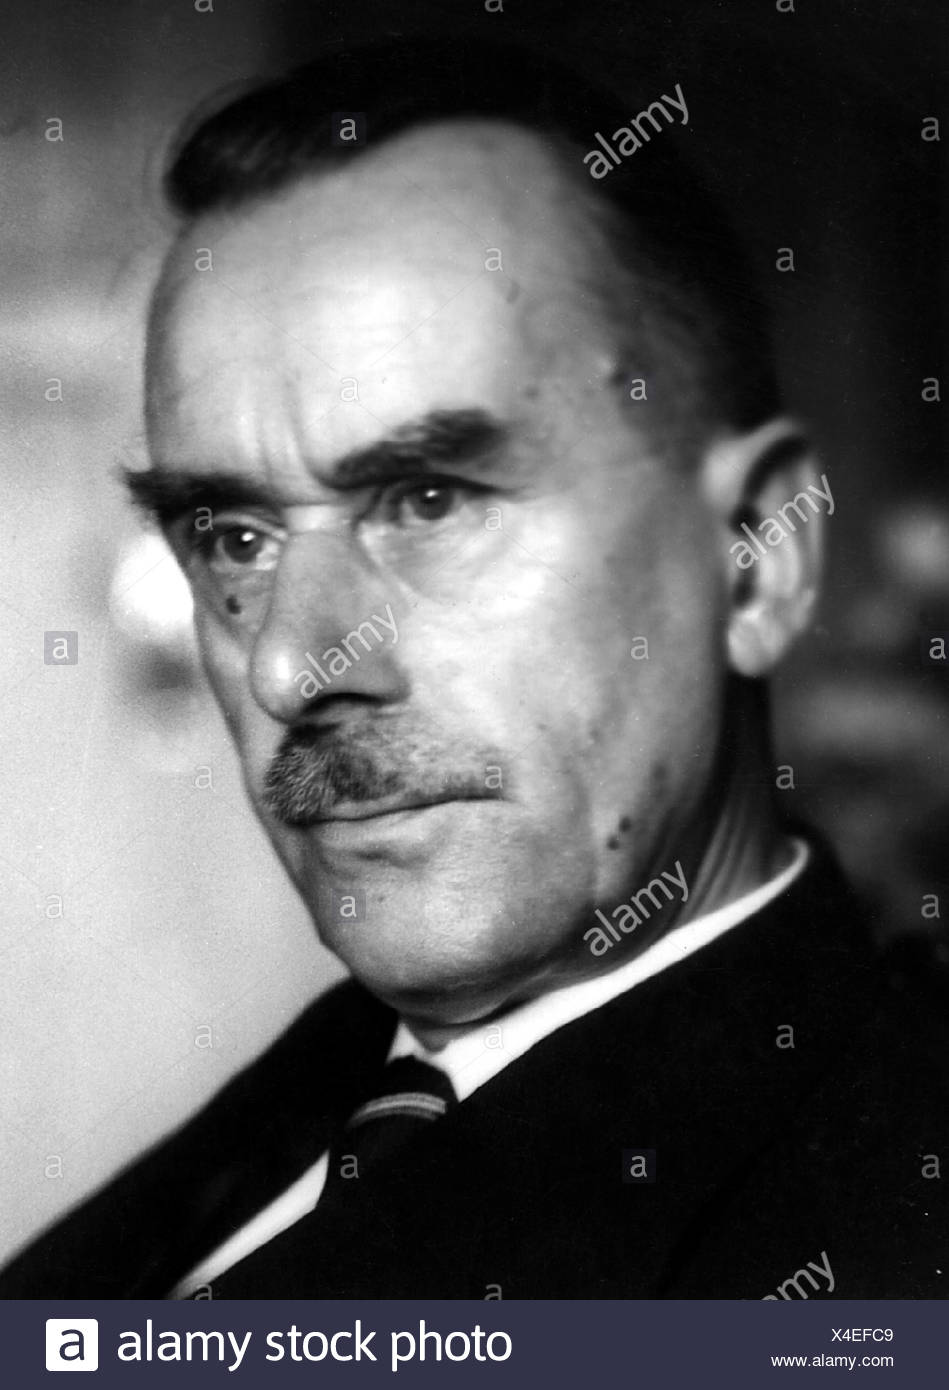 Mann, Thomas, 6.6.1875 - 12.8.1955, German author / writer, Nobel prize laureate for Literature 1929, portrait, Additional-Rights-Clearances-NA Stock Photo